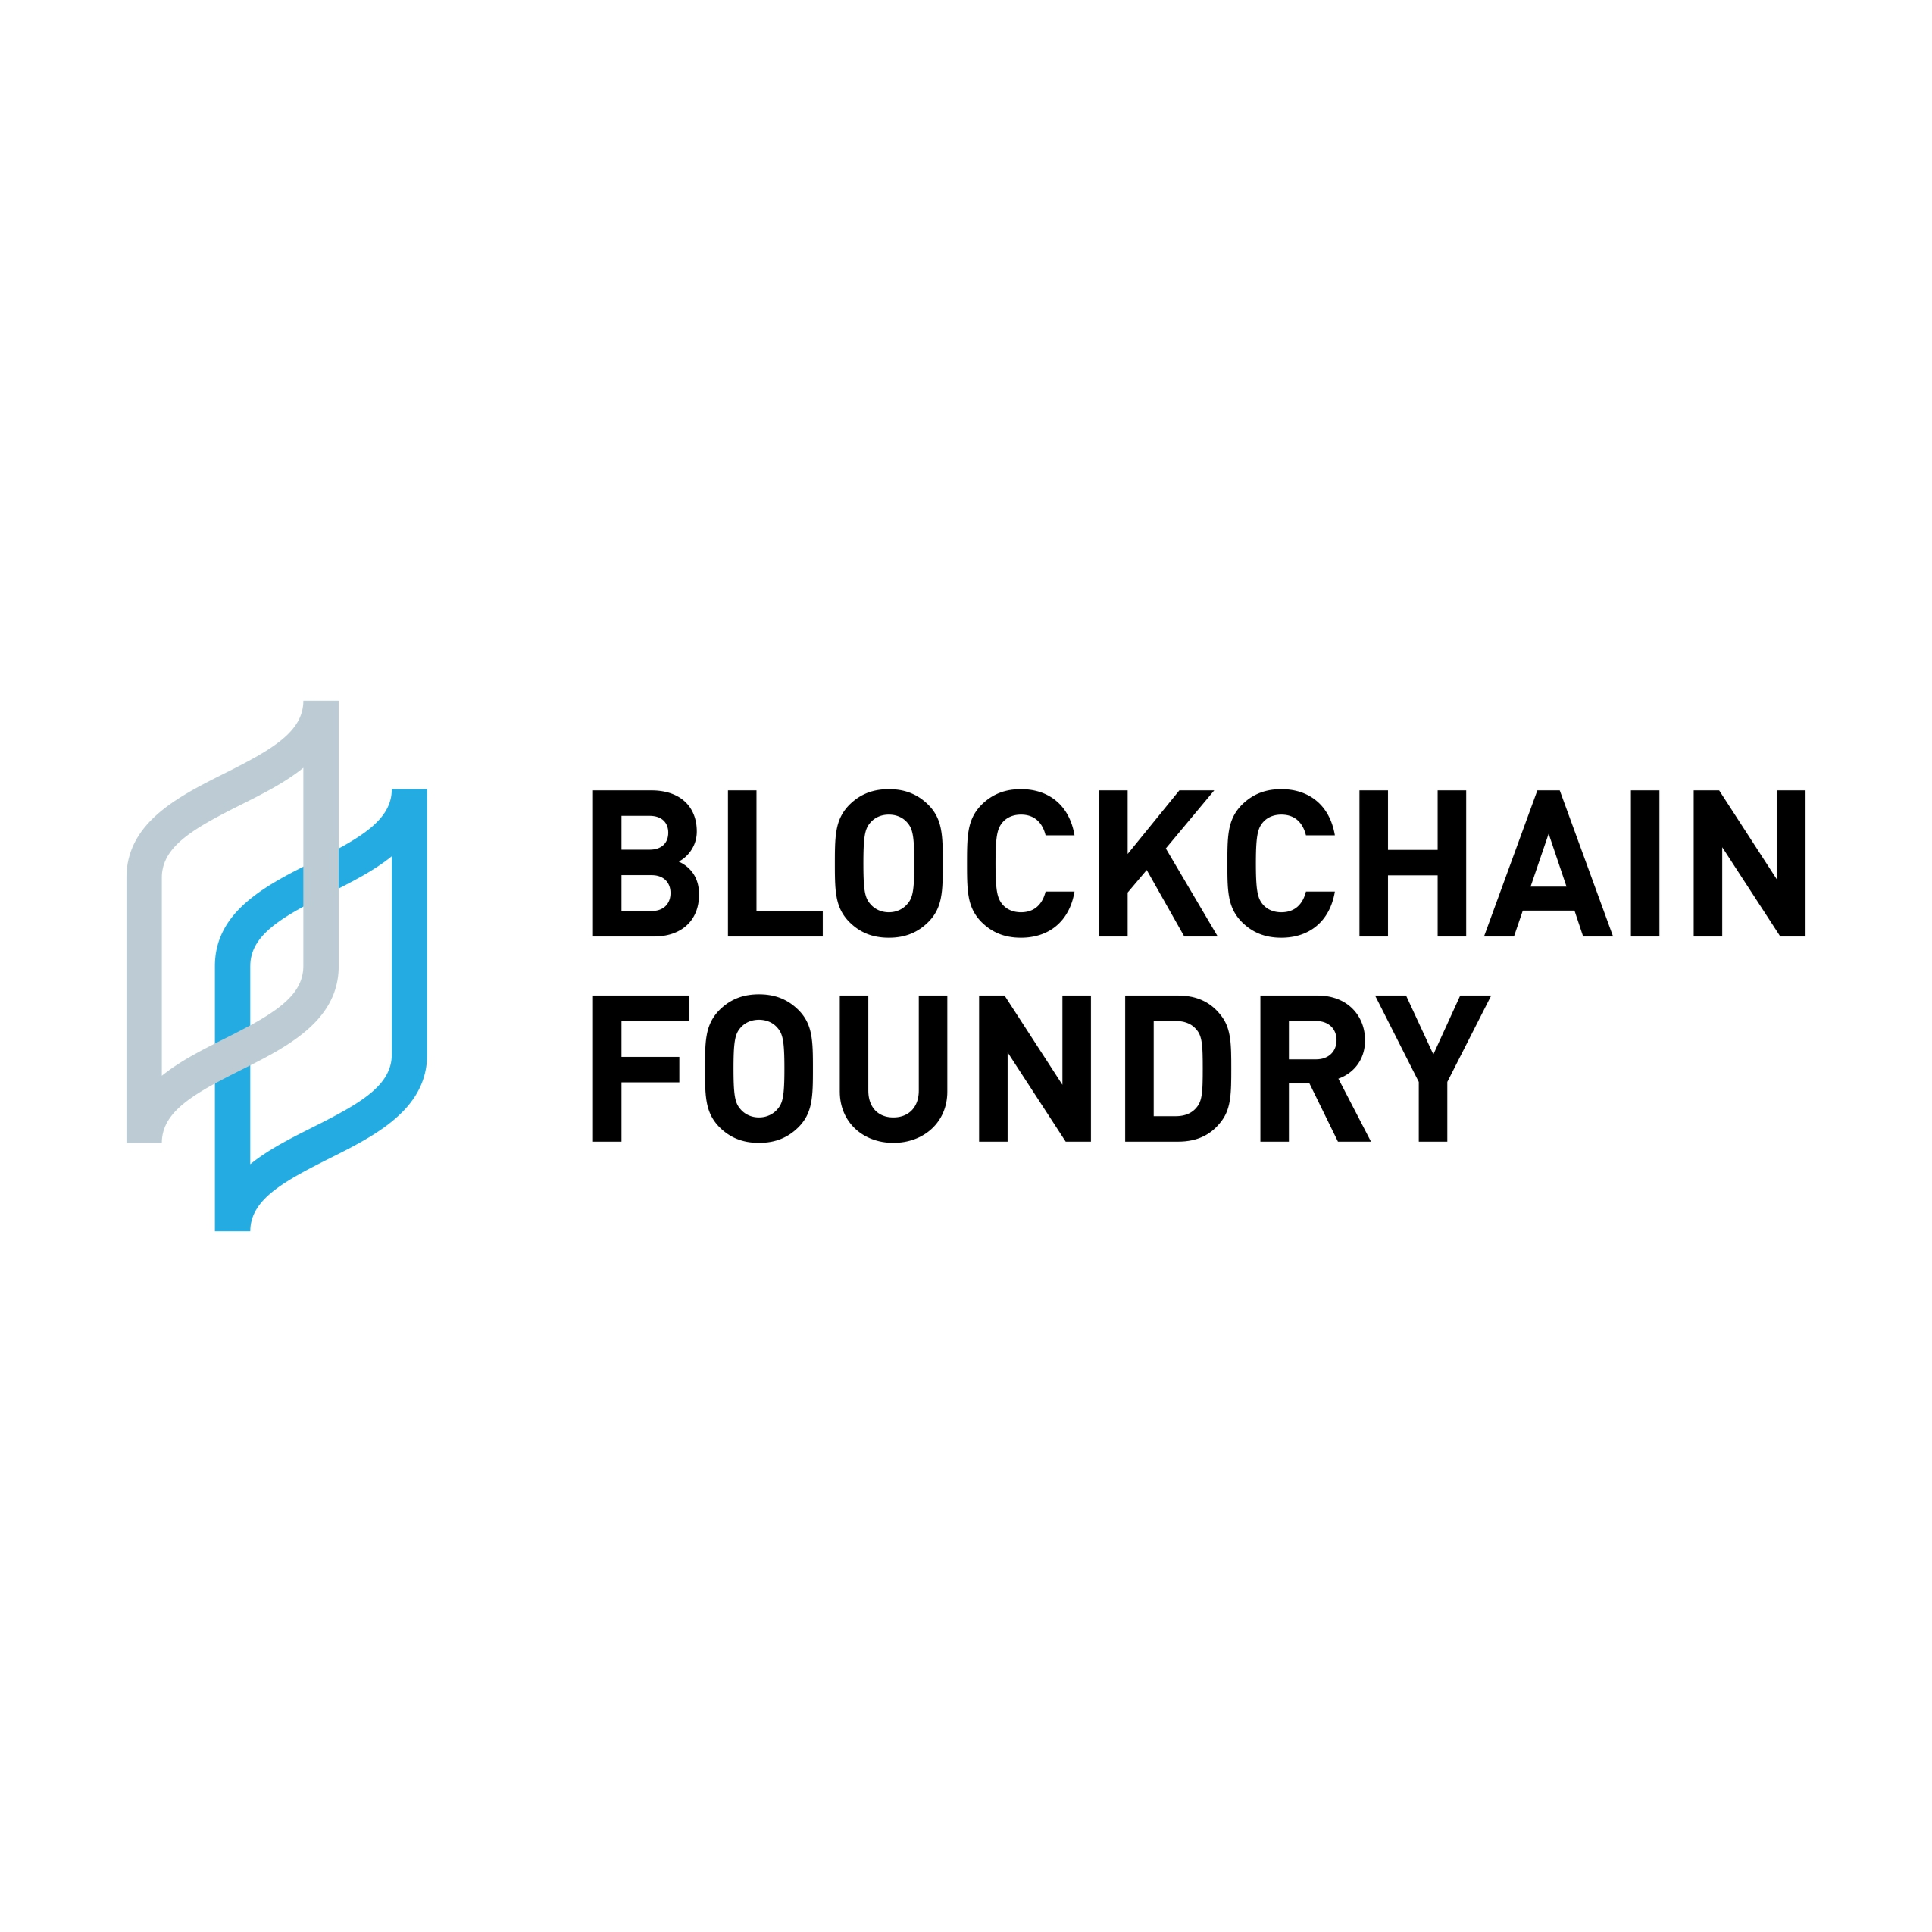 Blockchain Foundry Announces Change in Financial Year End and Auditor Resignation